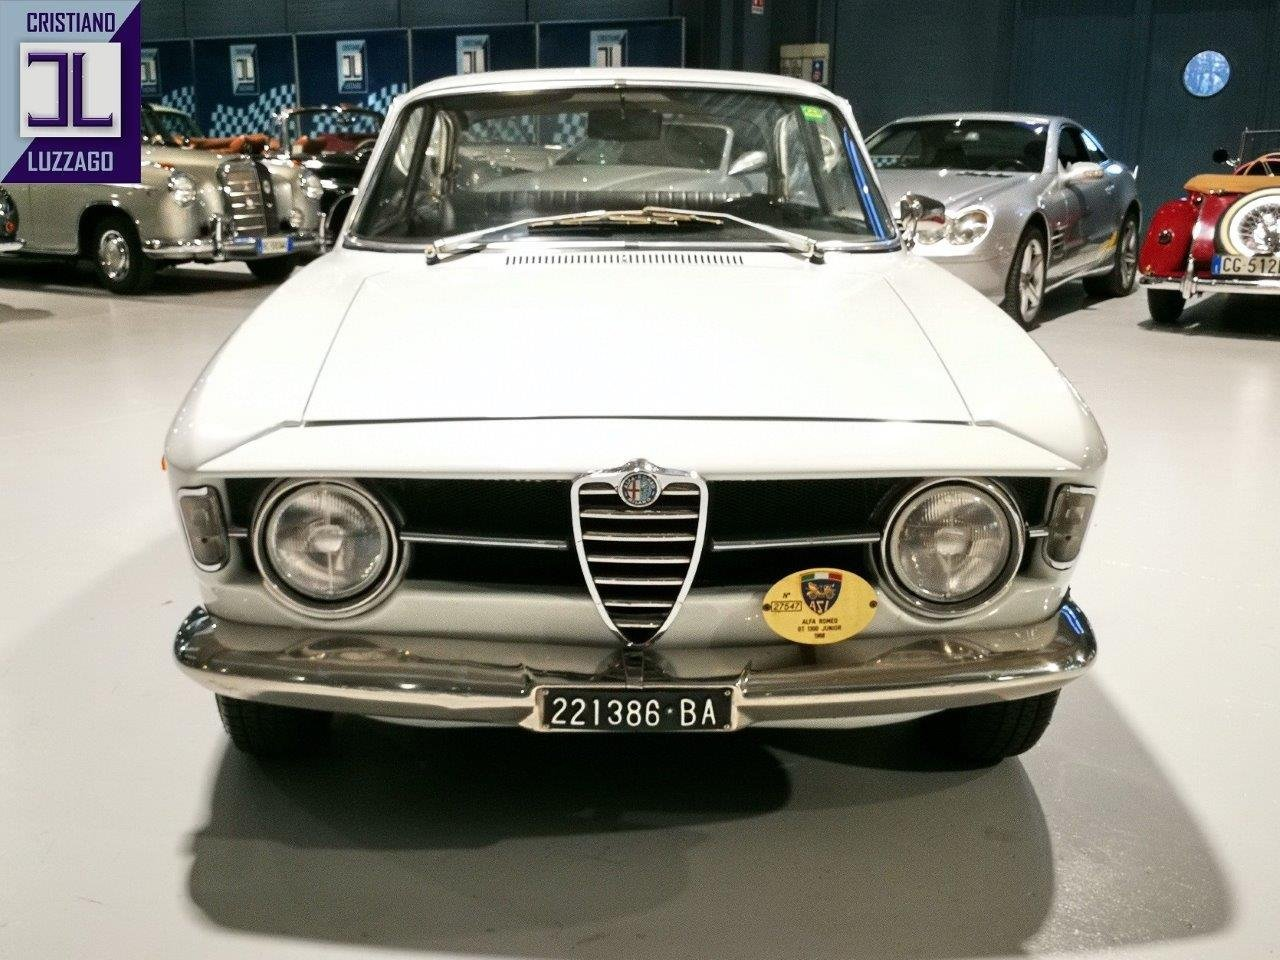 1968 ALFA ROMEO GT JUNIOR 1300 SCALINO SOLD (picture 3 of 6)